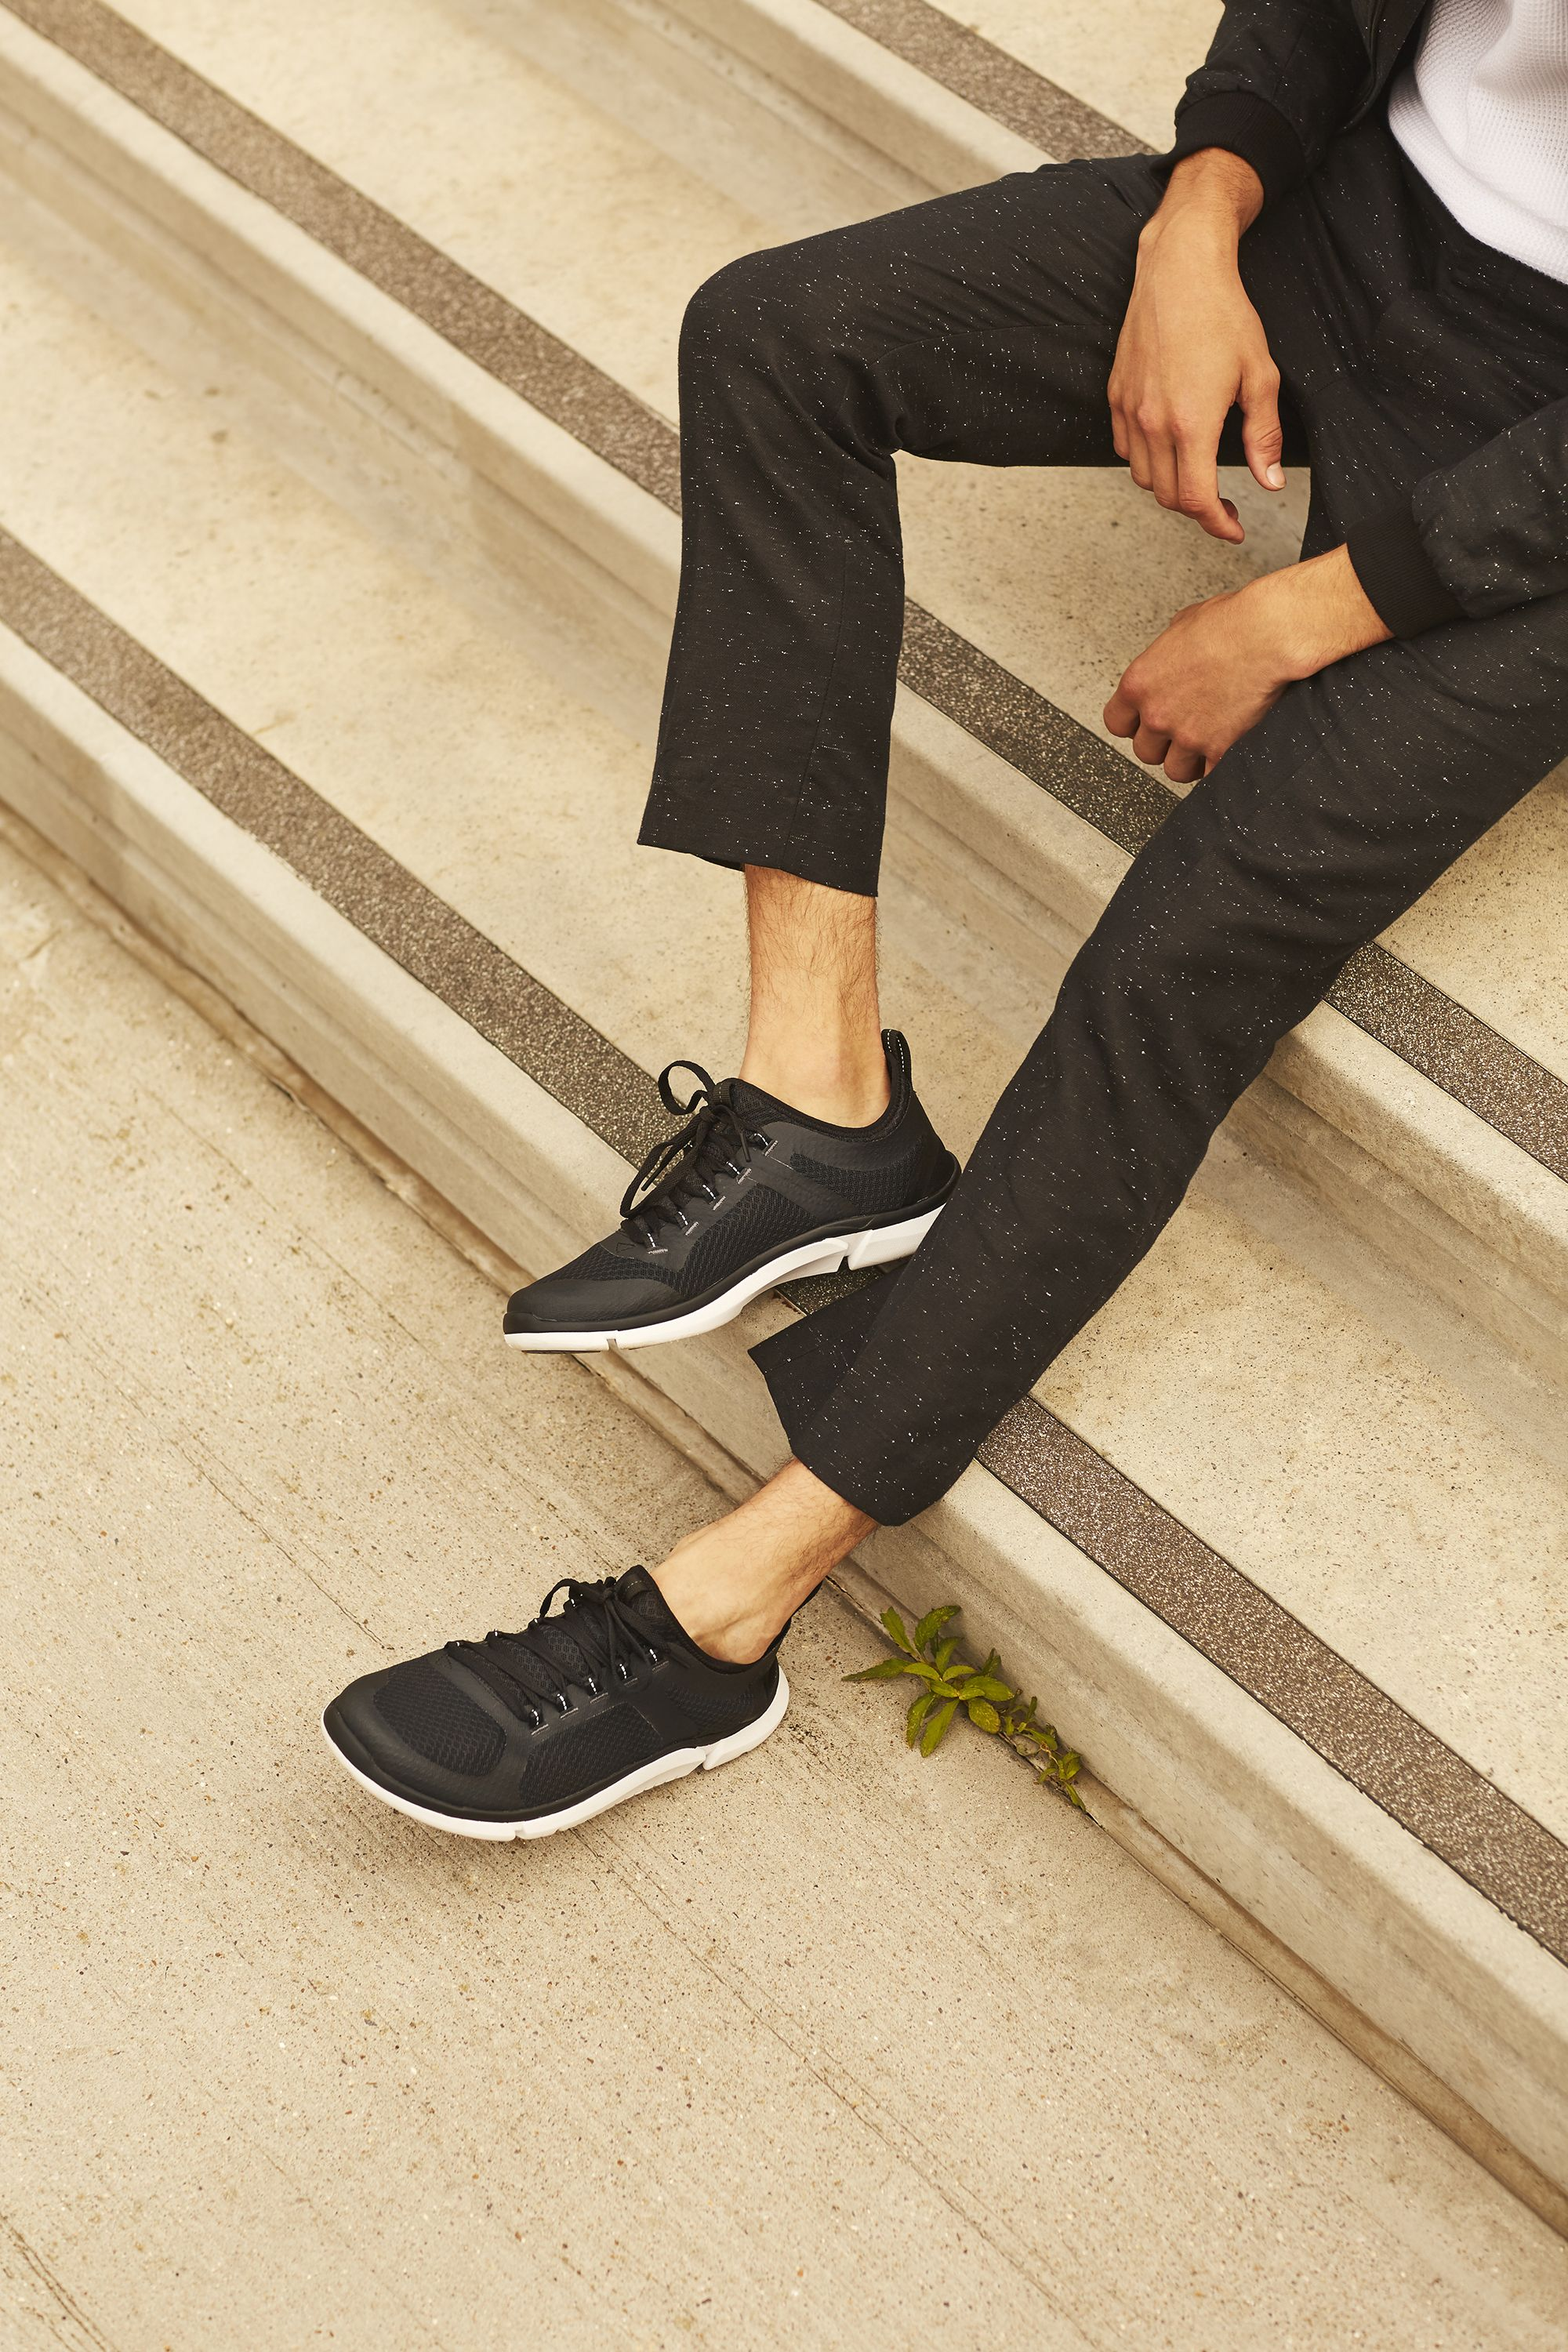 Athleisure Footwear You Need This Autumn